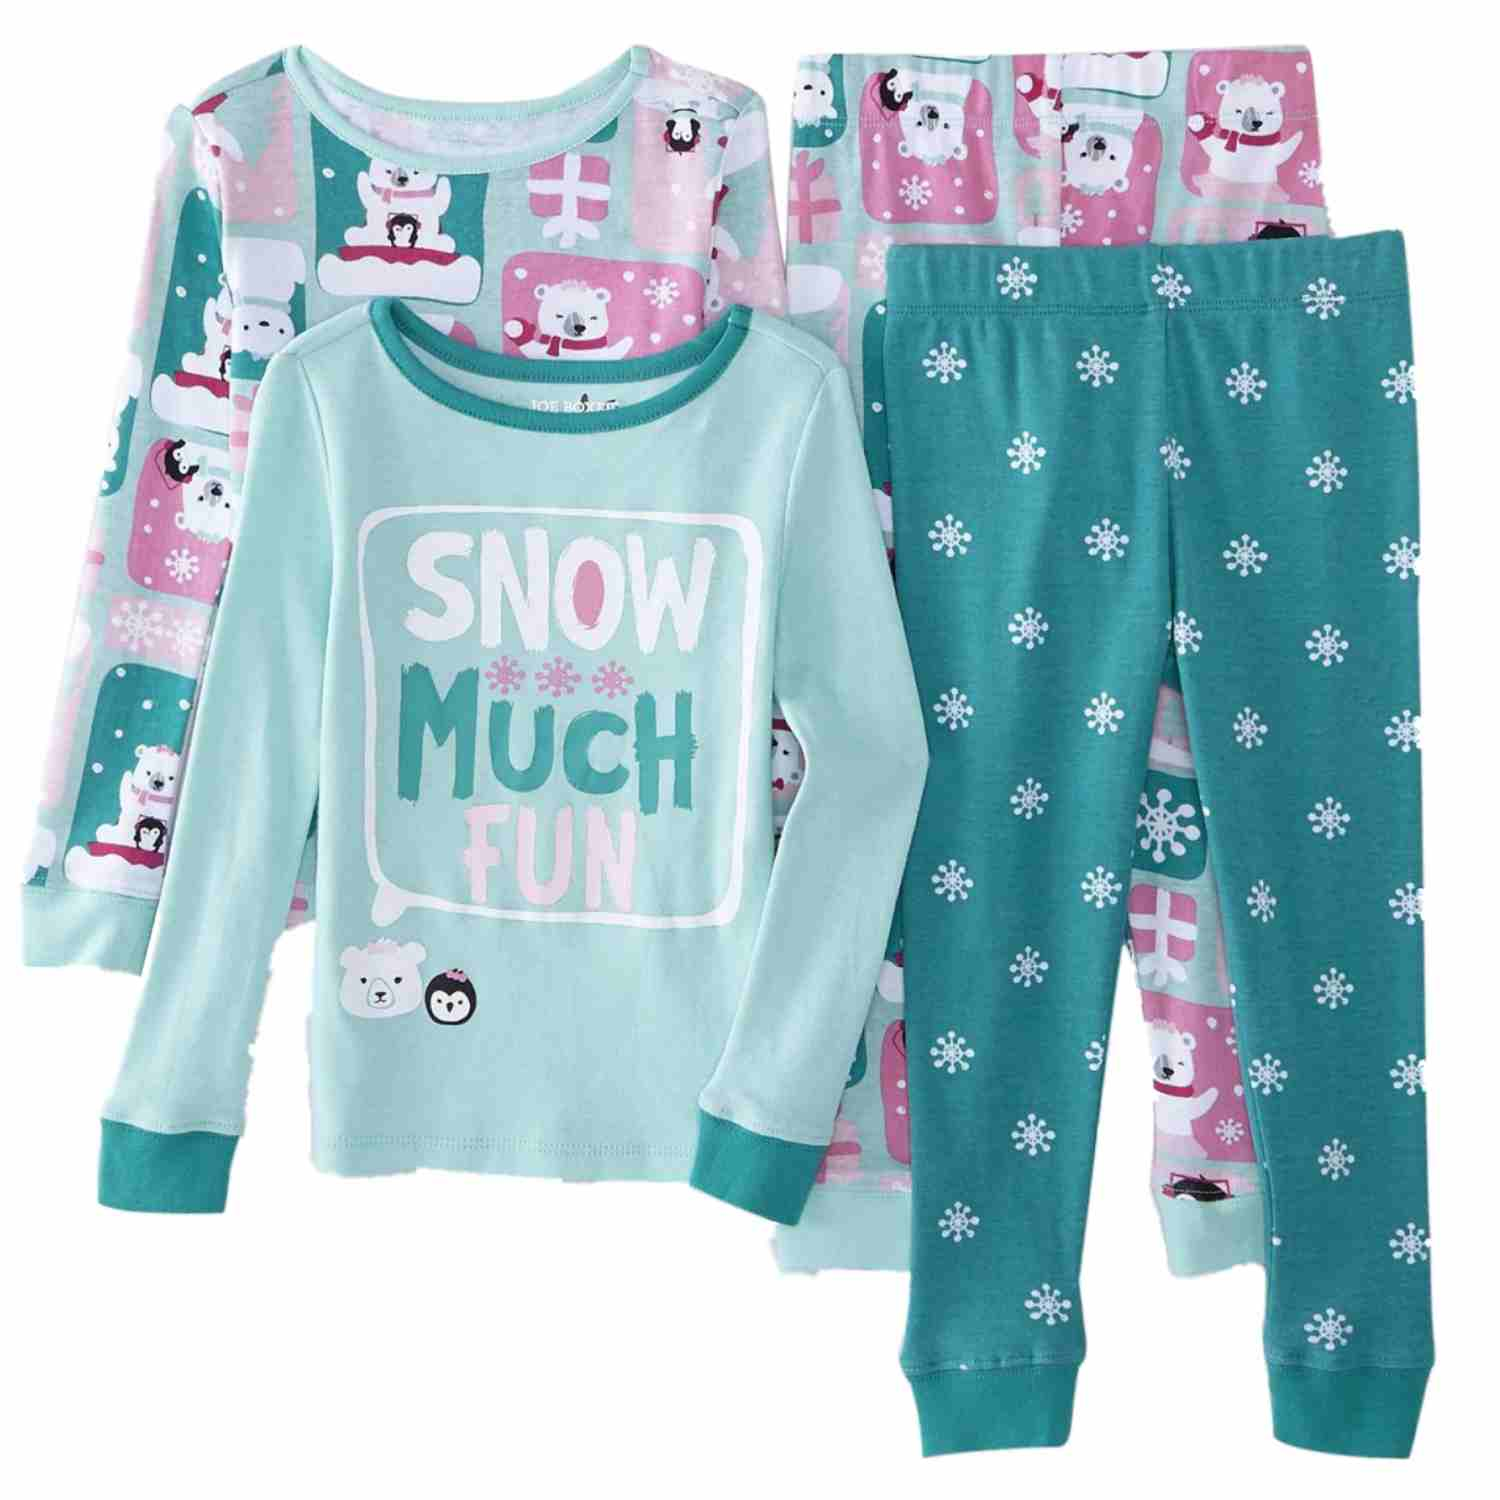 Joe Boxer Infant & Toddler Girls 2 Pack Snow Much Fun Pajama 4 PC Sleepwear Set